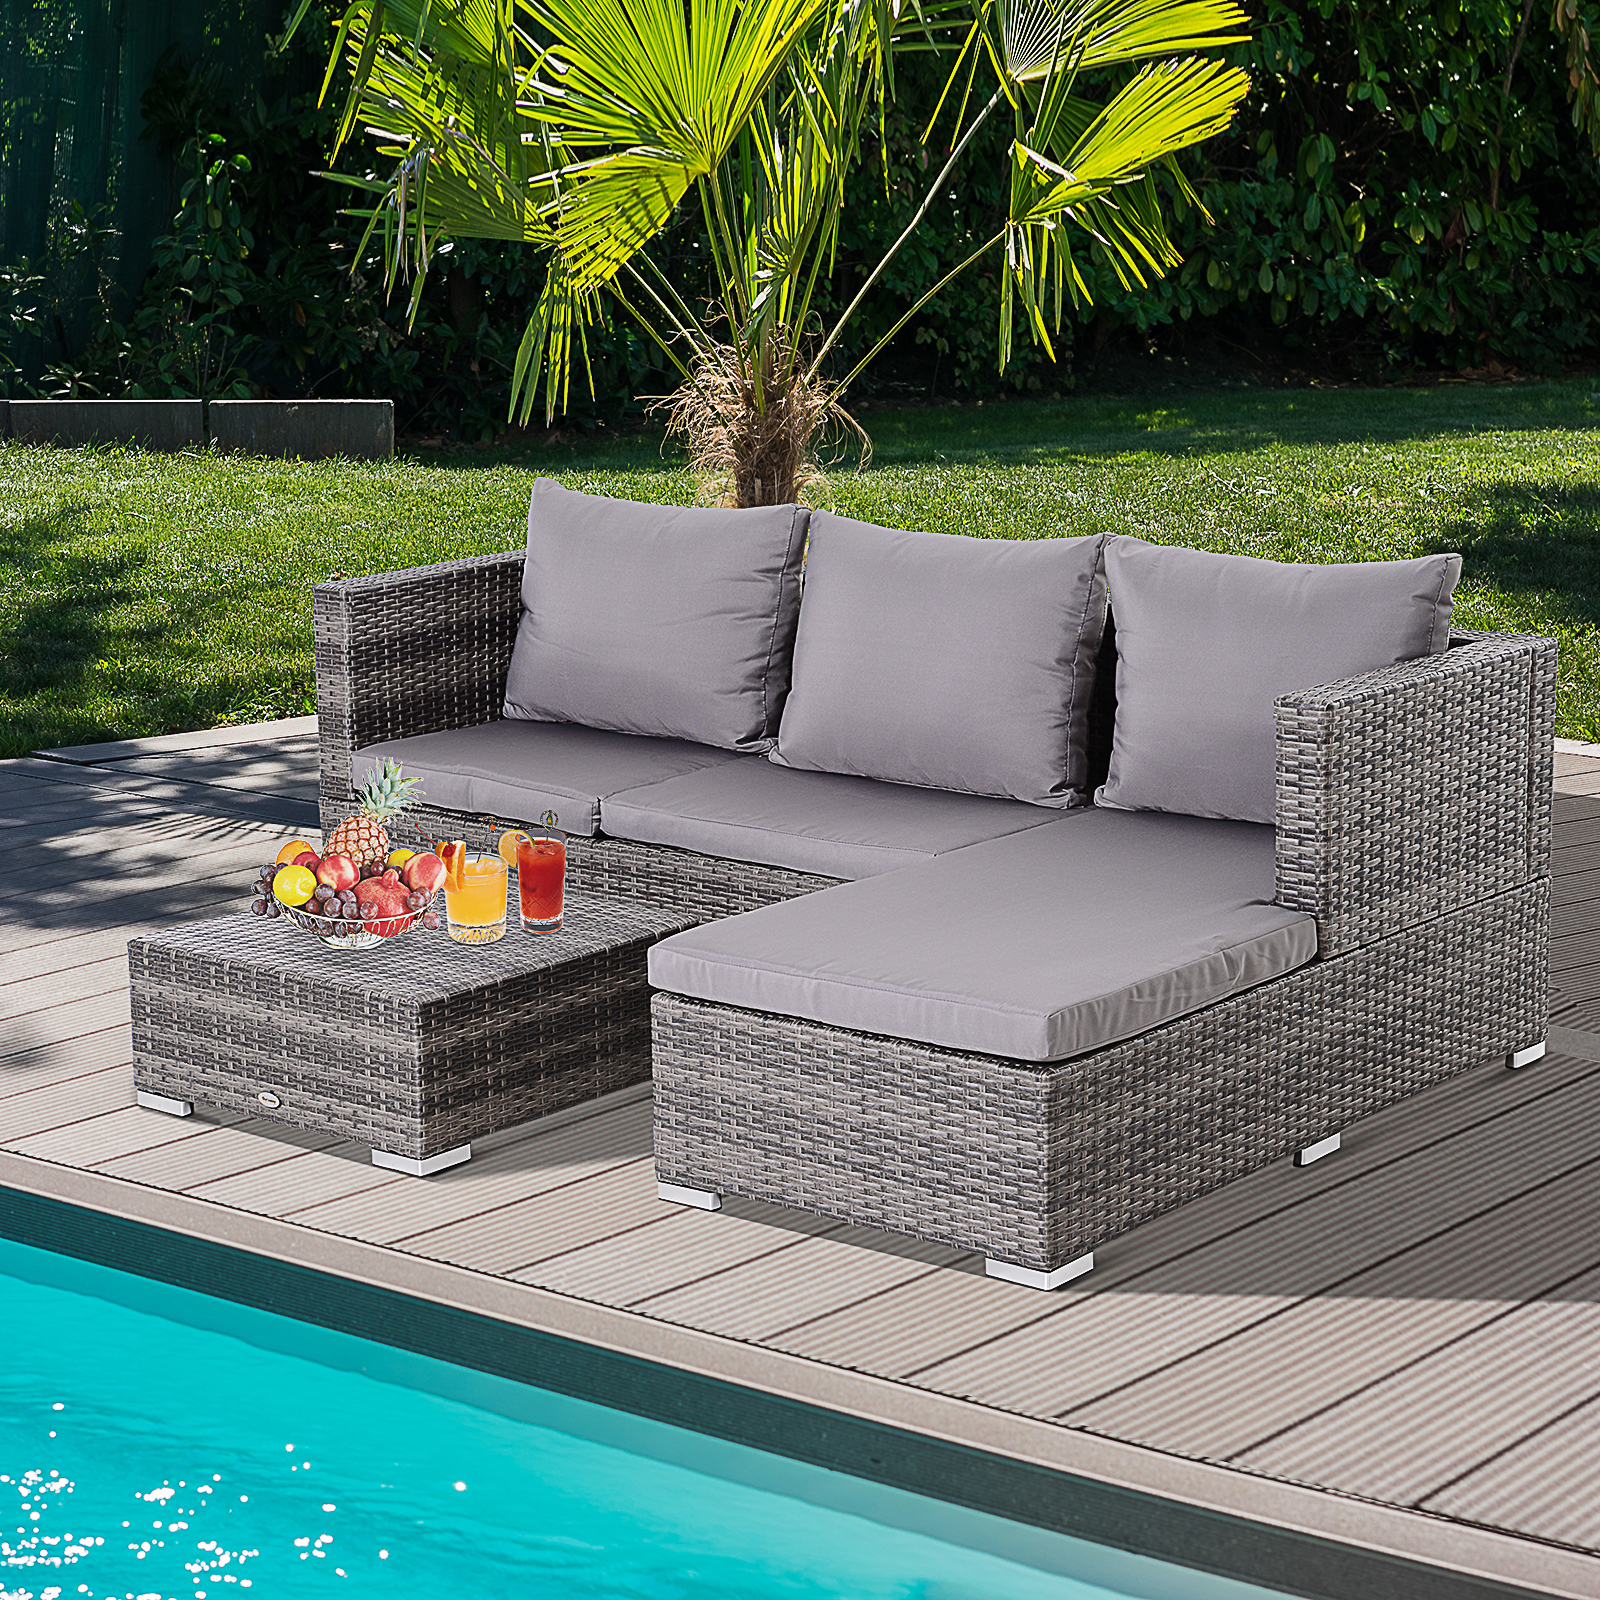 Better Homes And Gardens Replacement Cushions Azalea Ridge, Outsunny Rattan Garden Sofa Set Storage Table Wicker Patio Lounger 4 Seater Grey Ebay